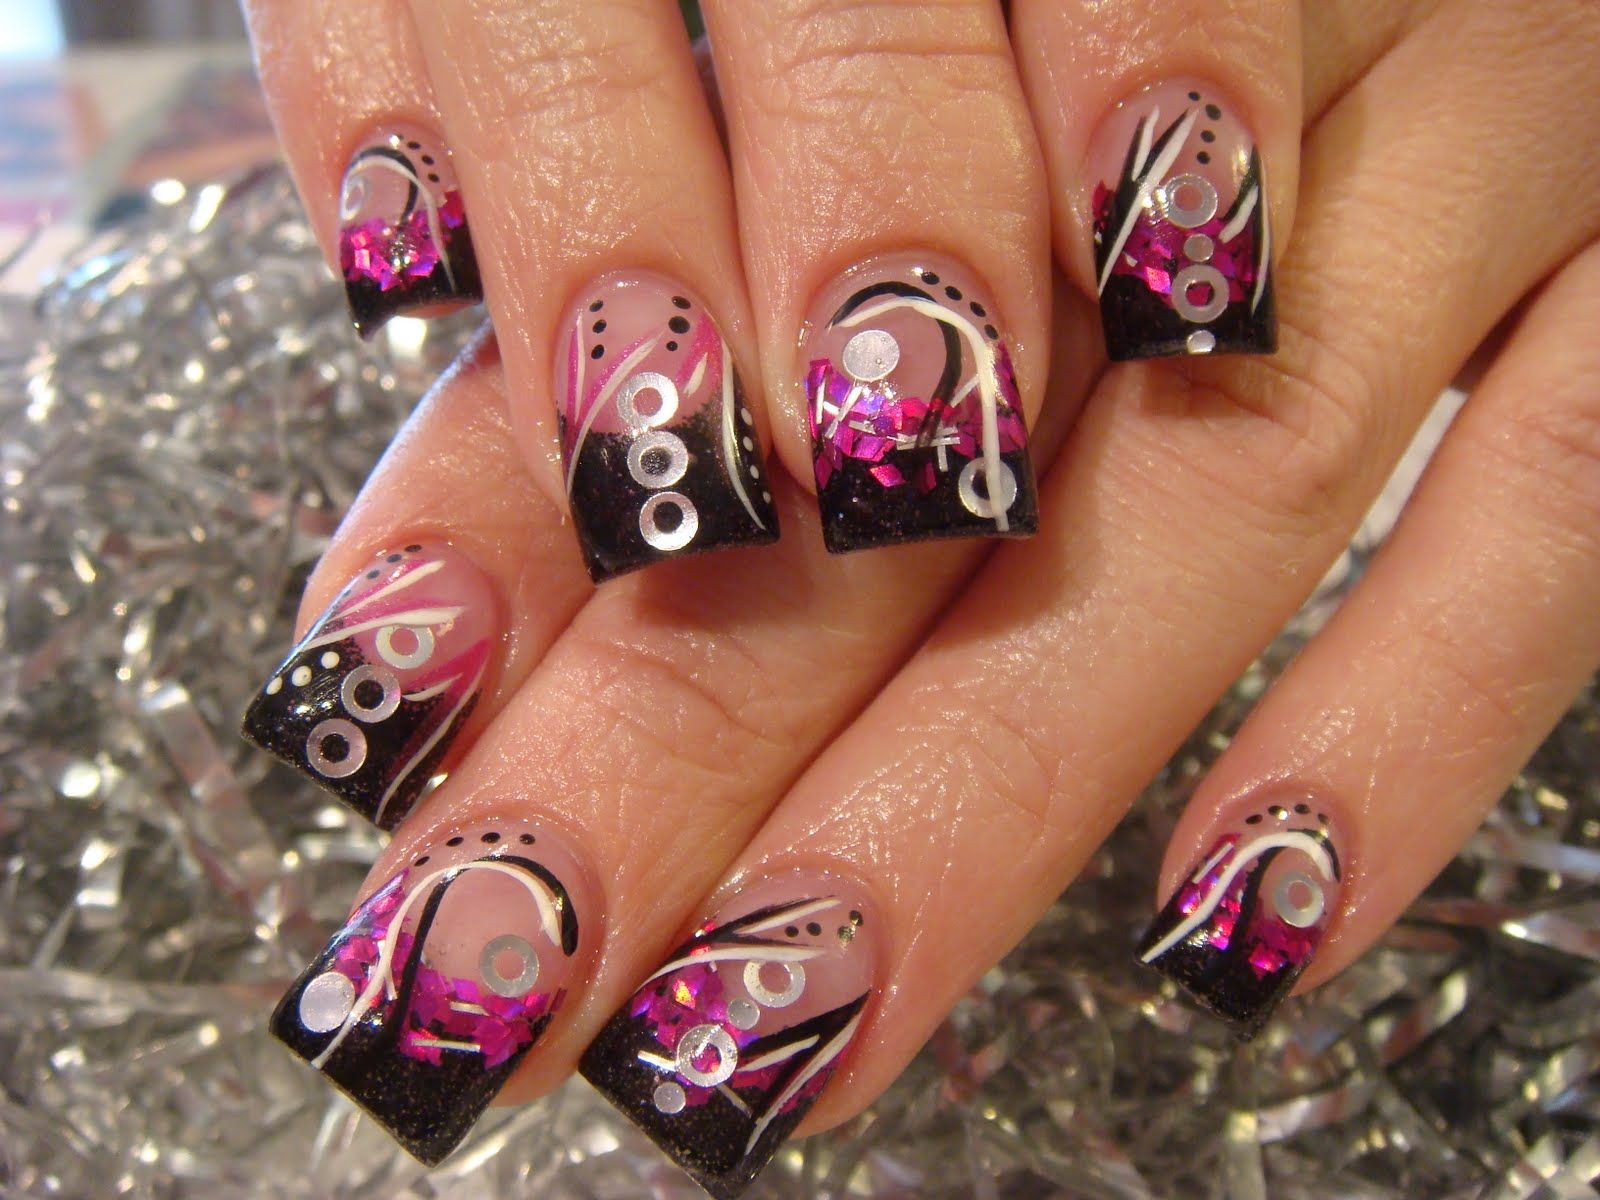 Nail Art Design Pictures 2 | much fun with the nail art this week. 1 ...